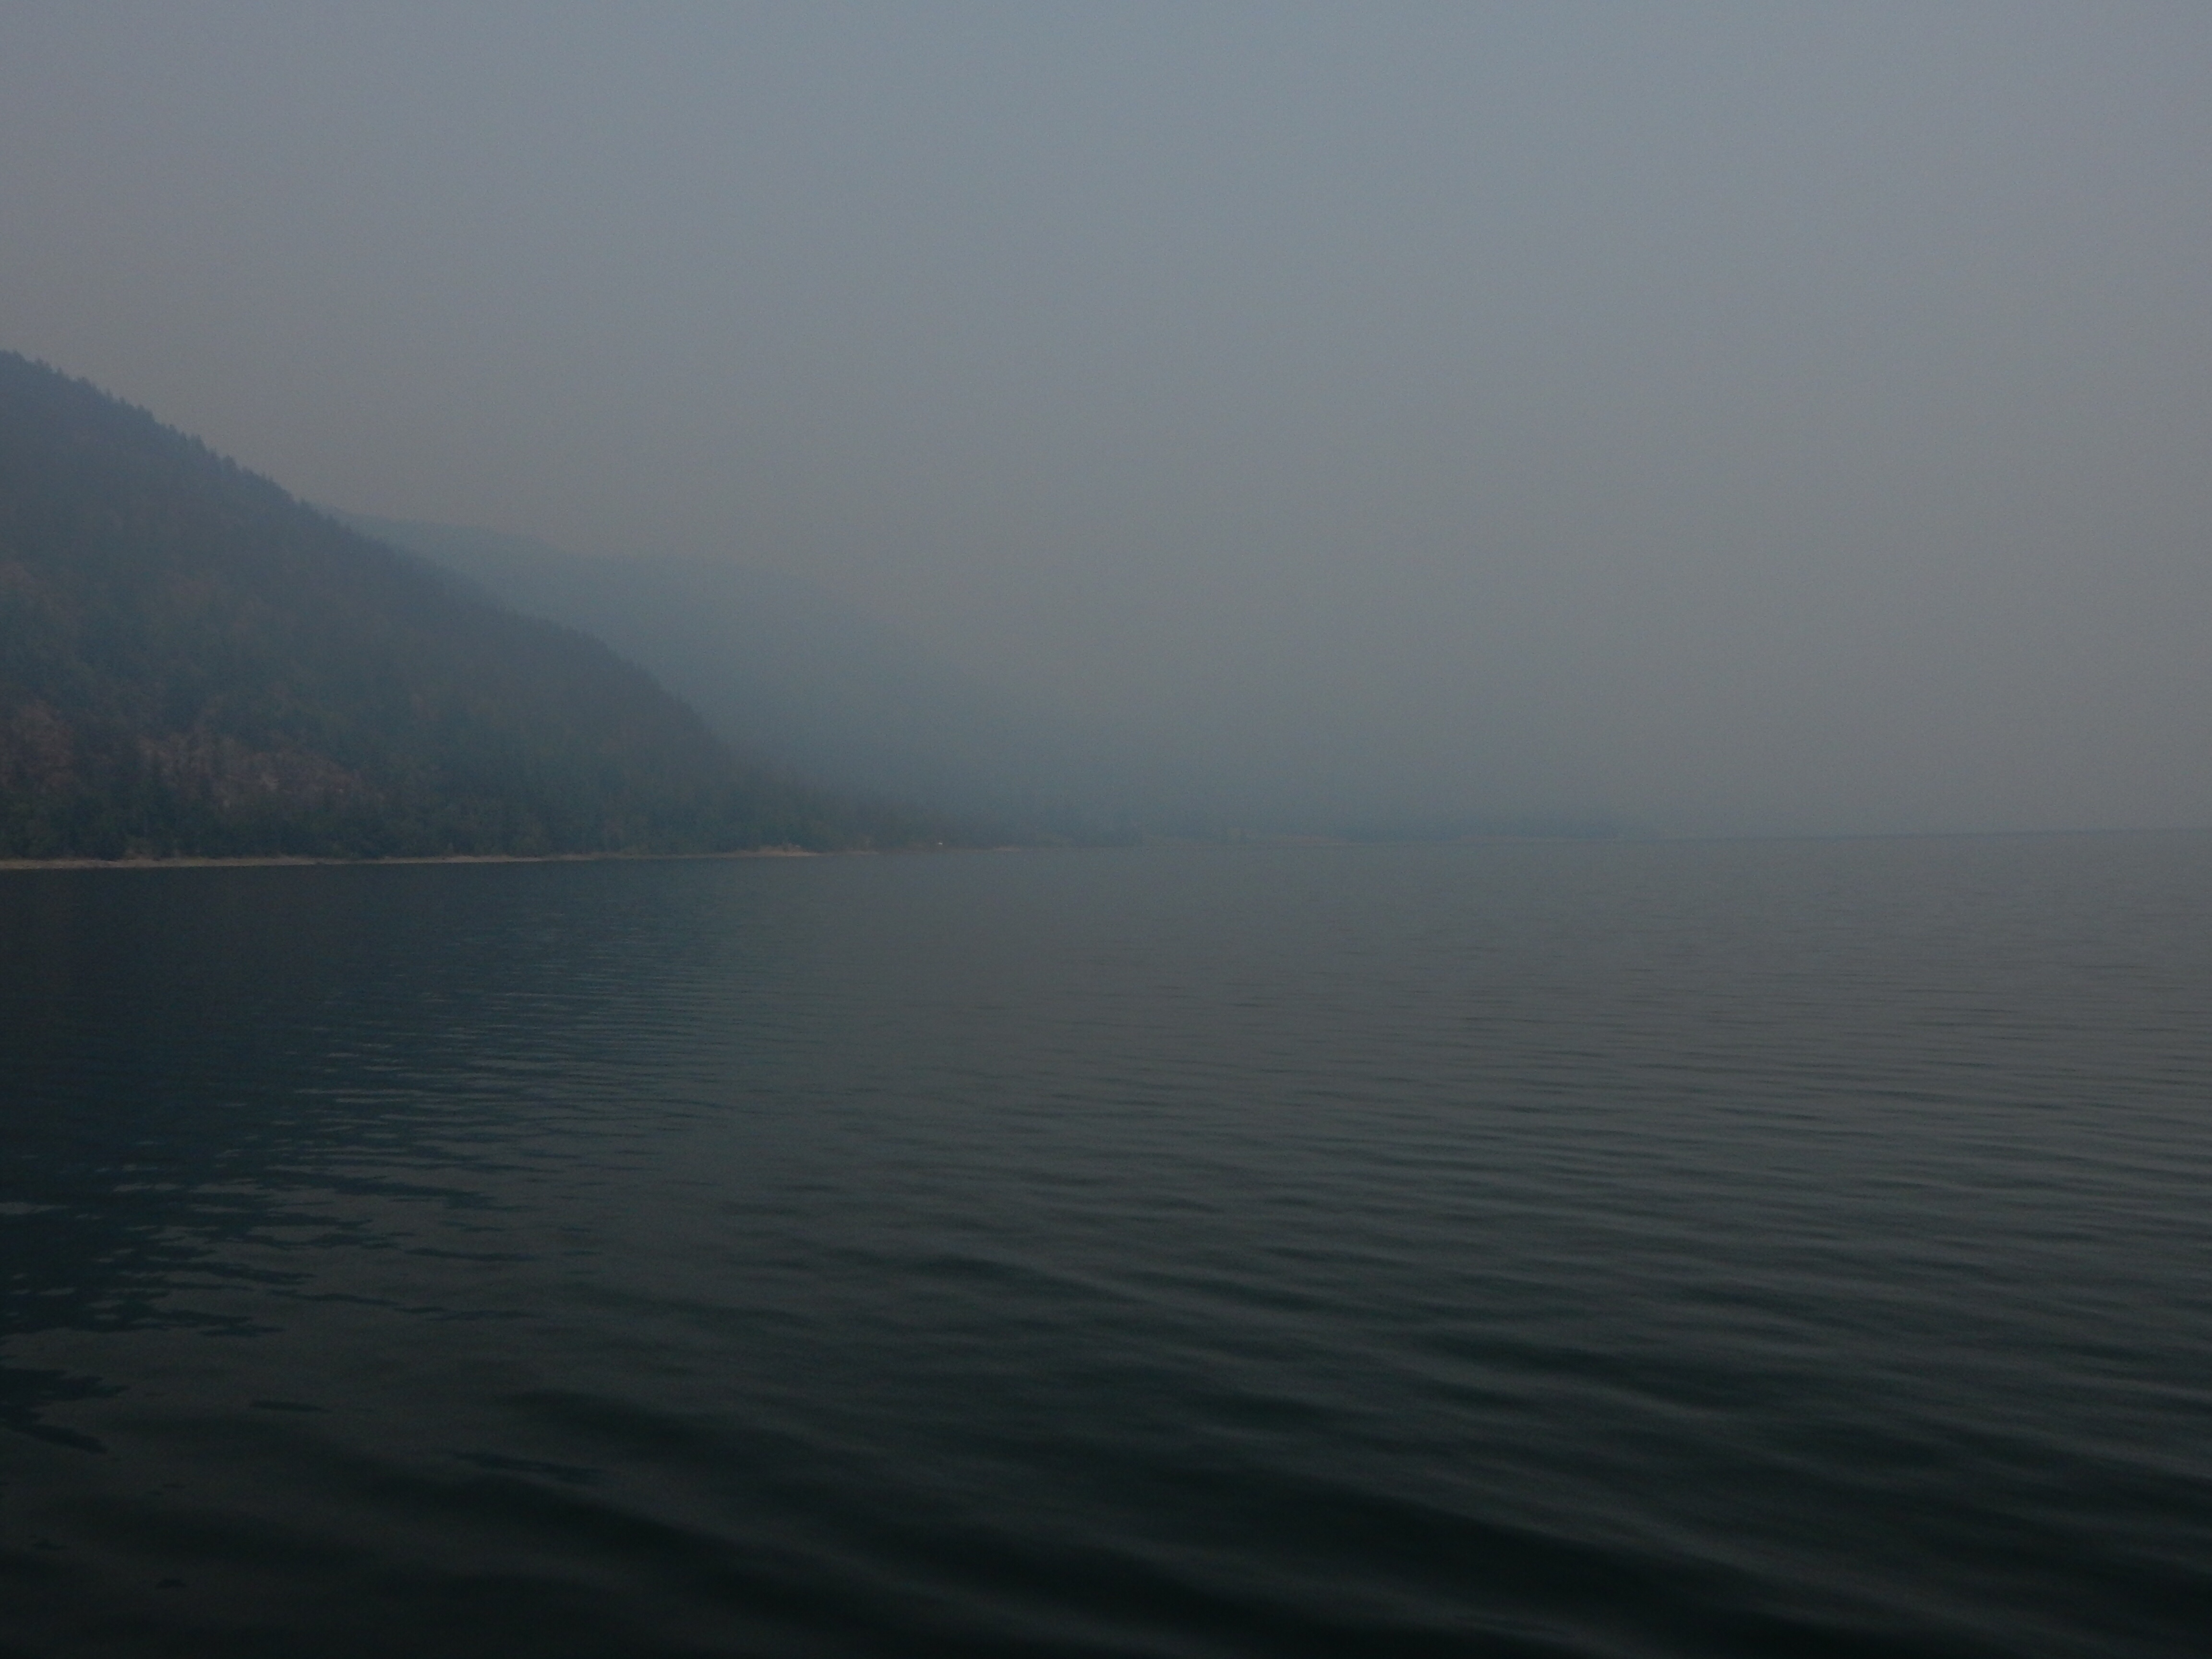 Trying to look through the wildfire smoke north of the Needles ferry.